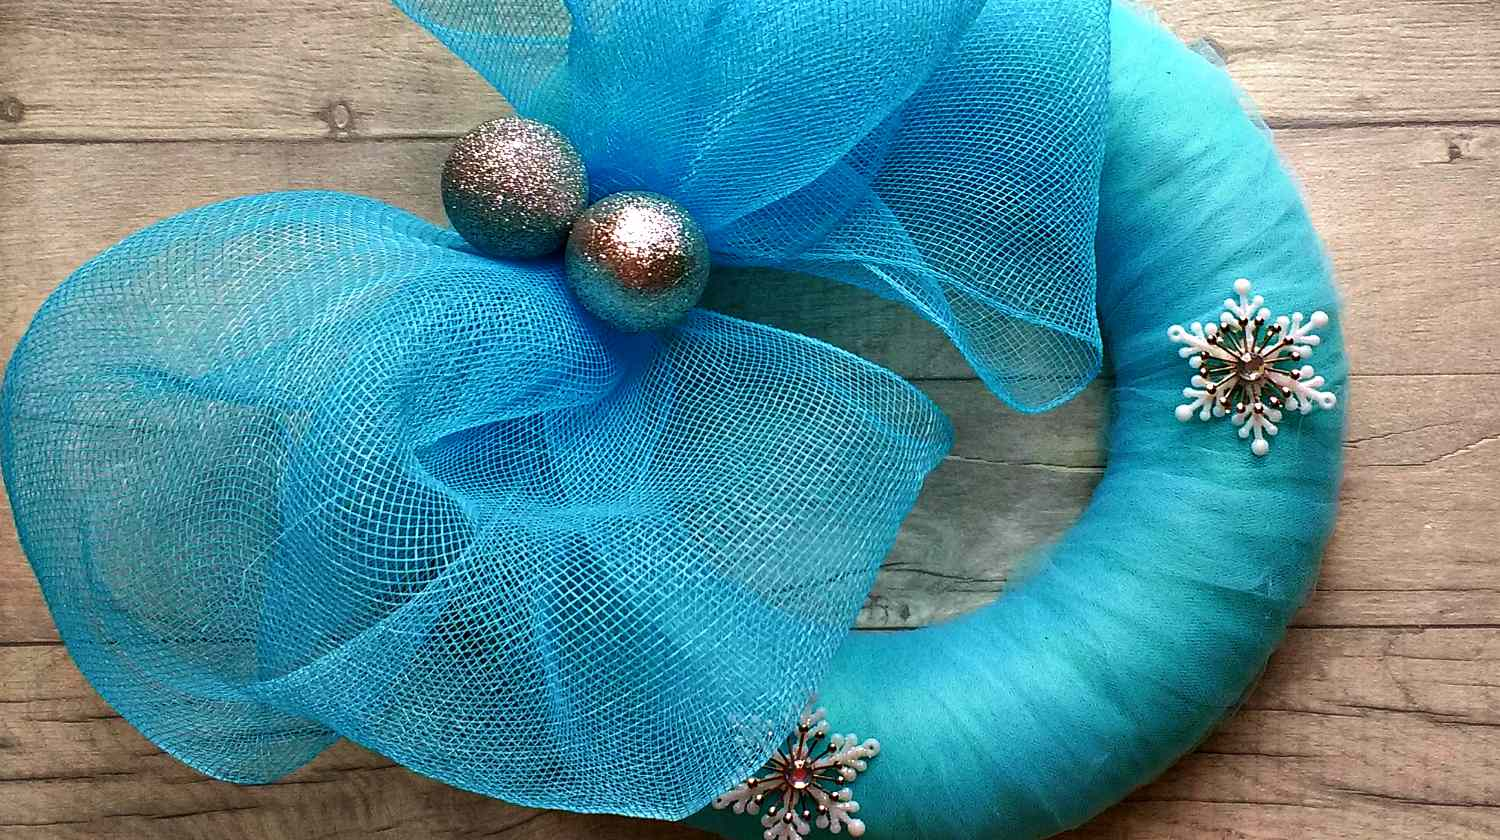 Blue christmas wreath with silver baubles and stars on wooden surface | Mesh Wreath Project: DIY Mesh Wreath Ideas For All Seasons | Featured